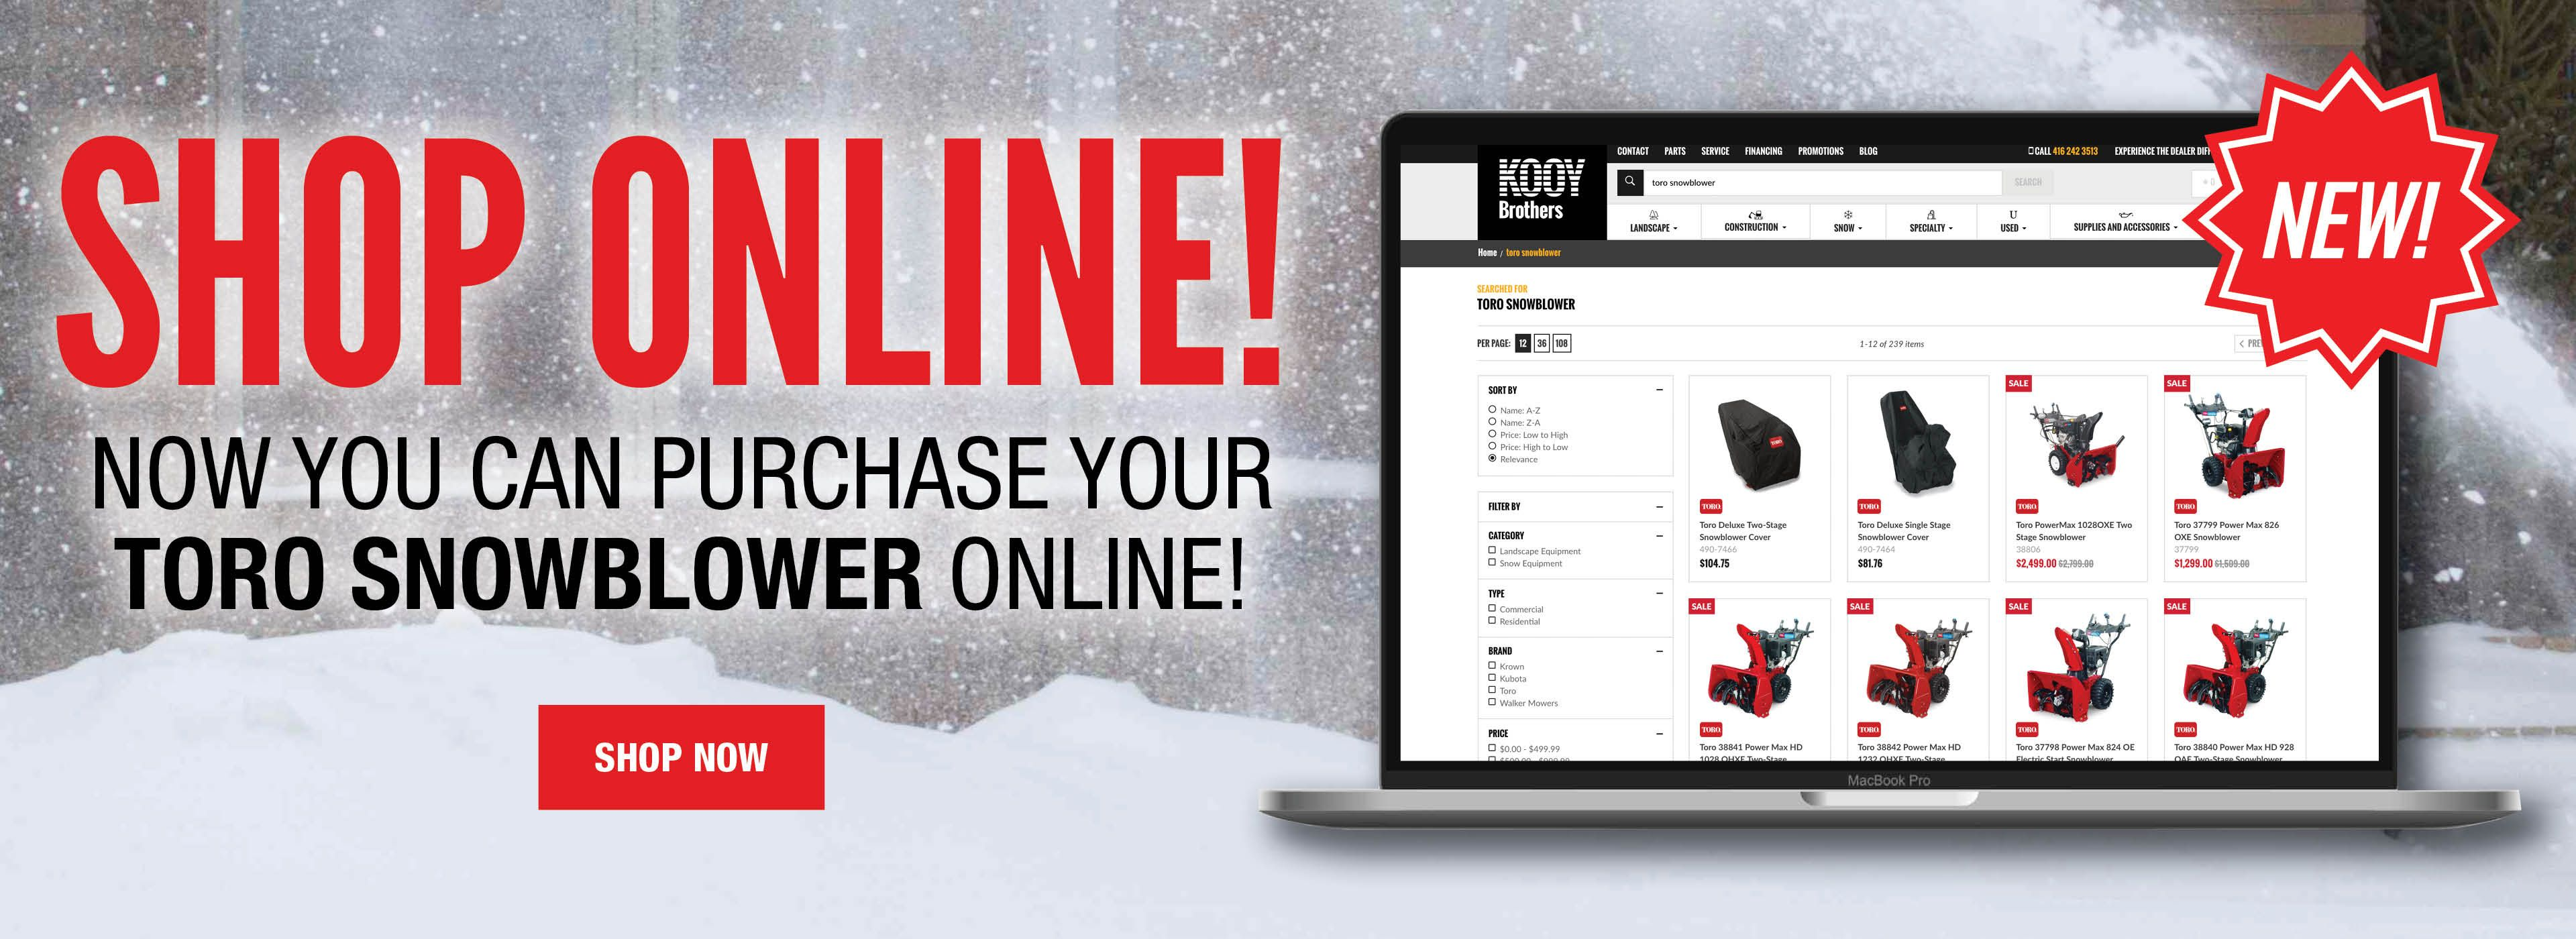 Buy Your Snowblower Online!